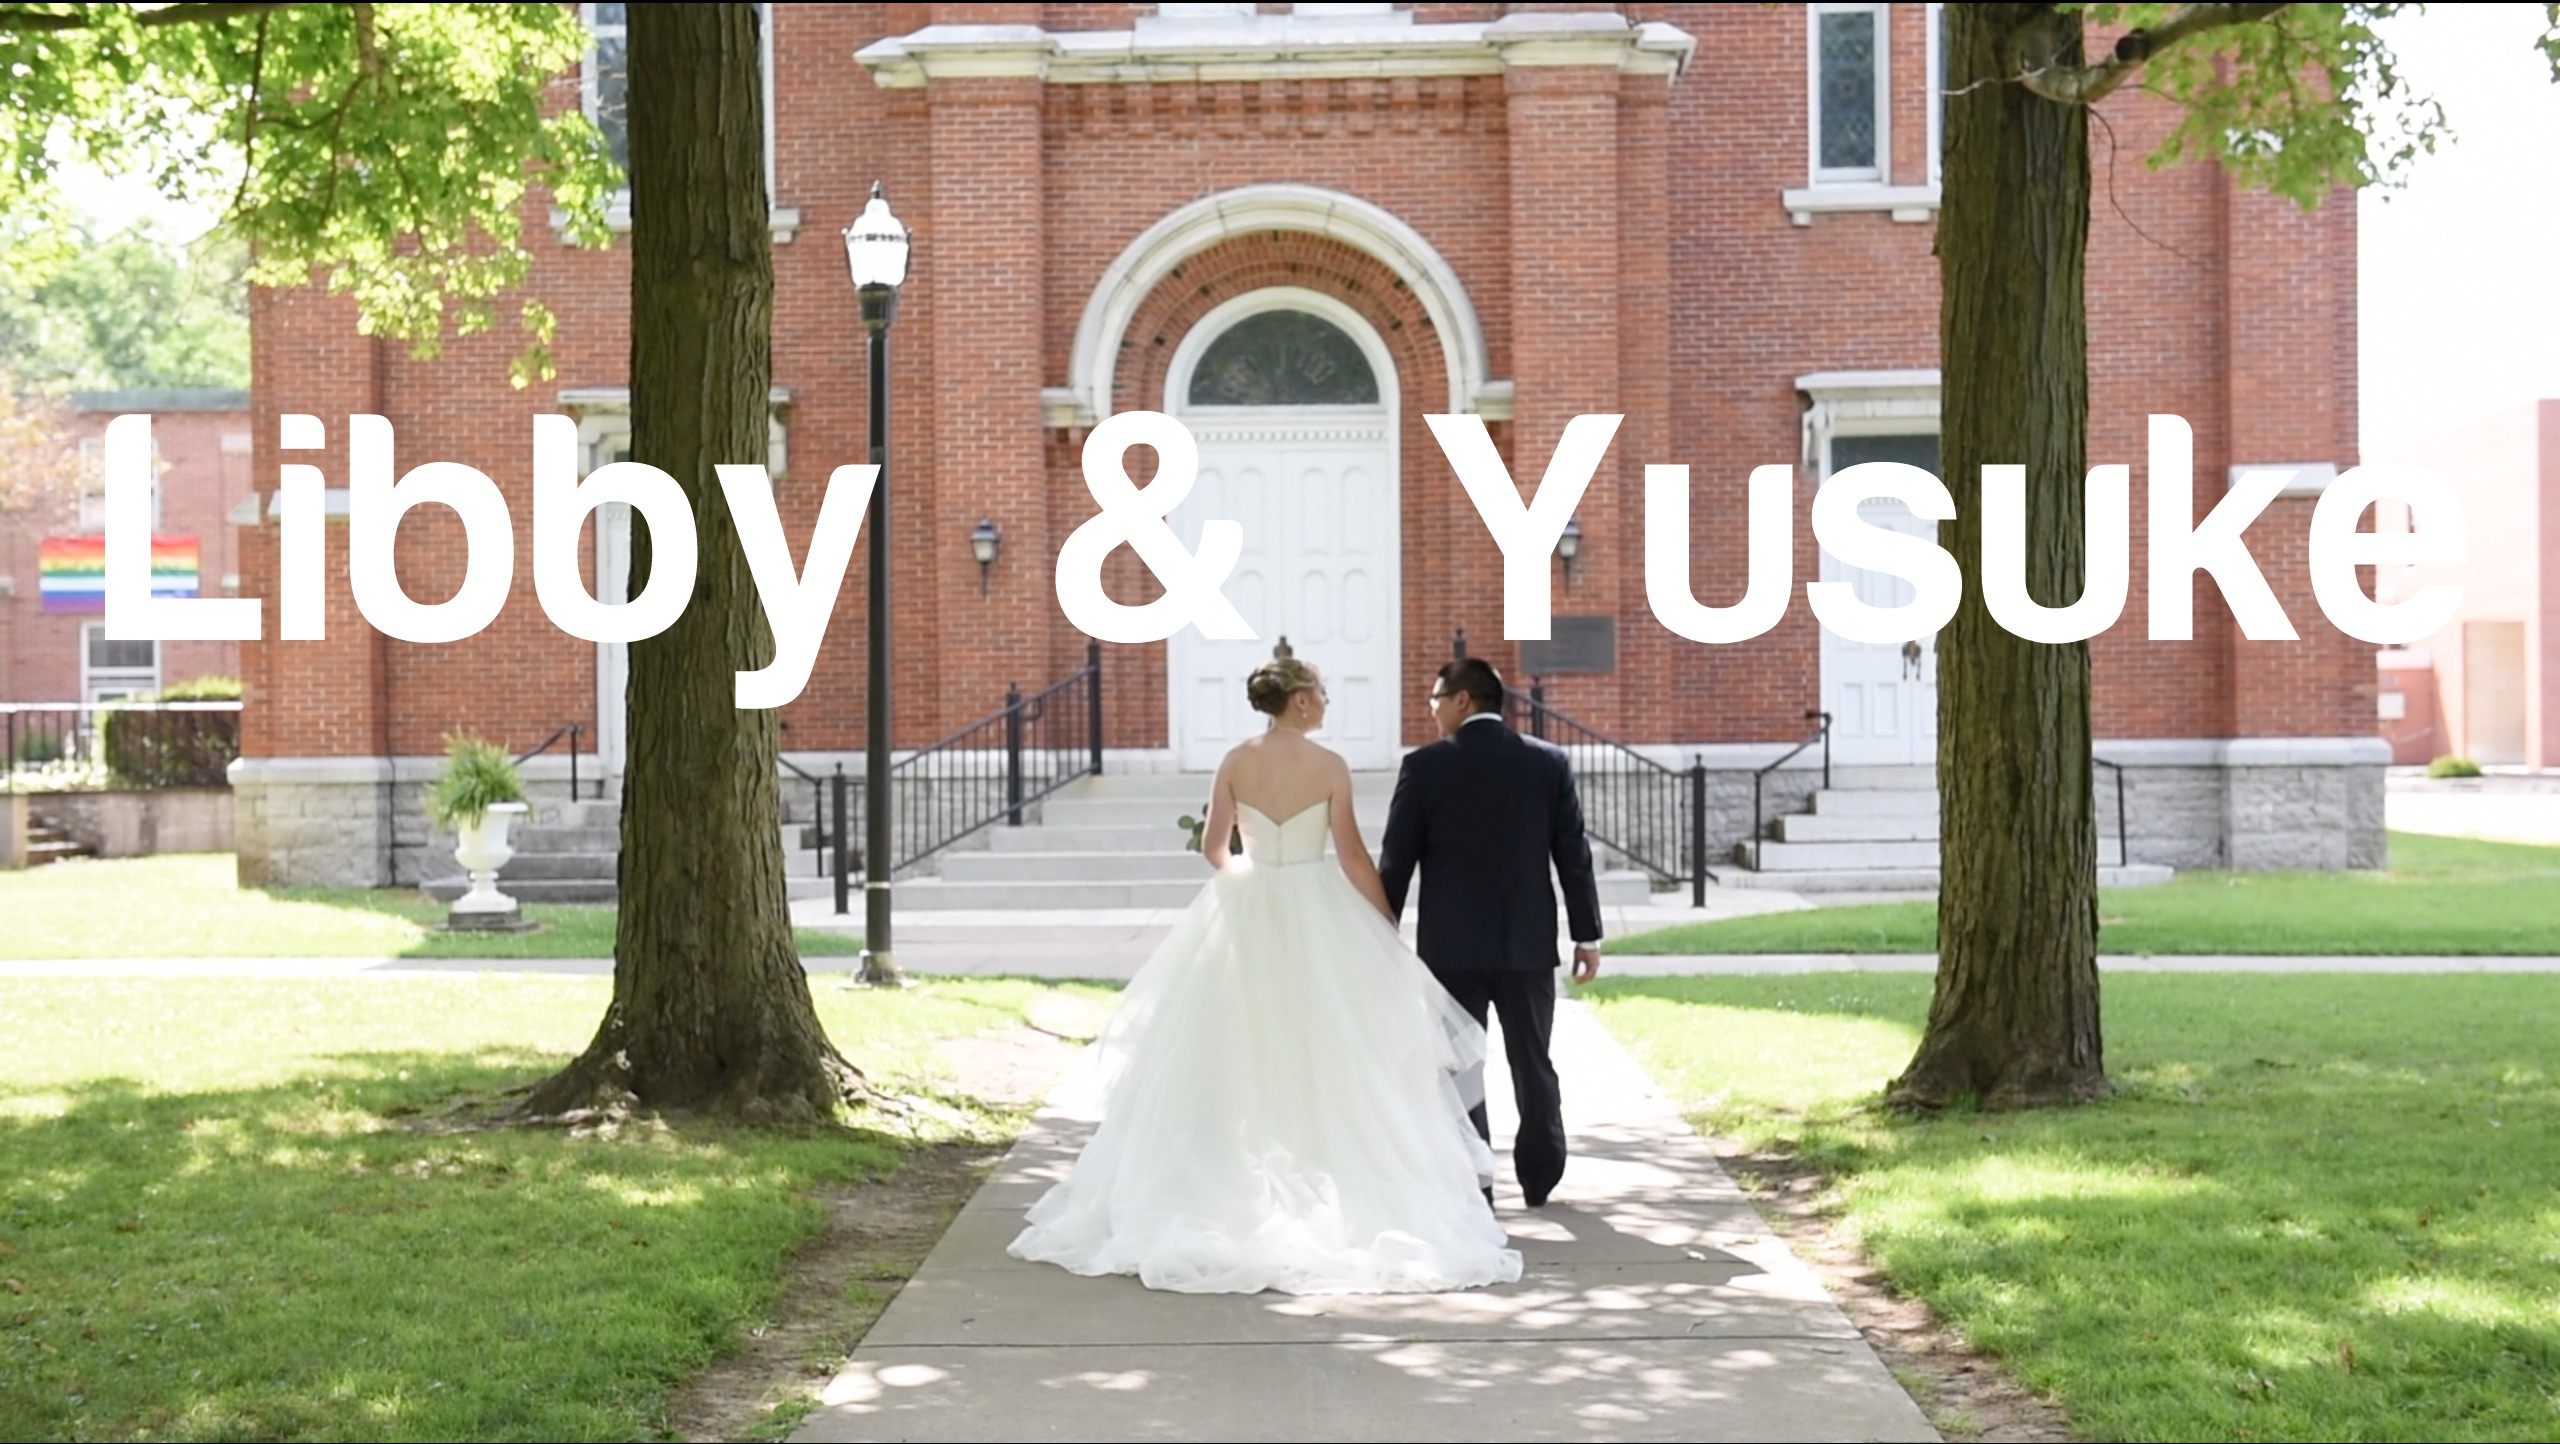 Libby + Yusuke | Homer, New York | Center 4 The Arts